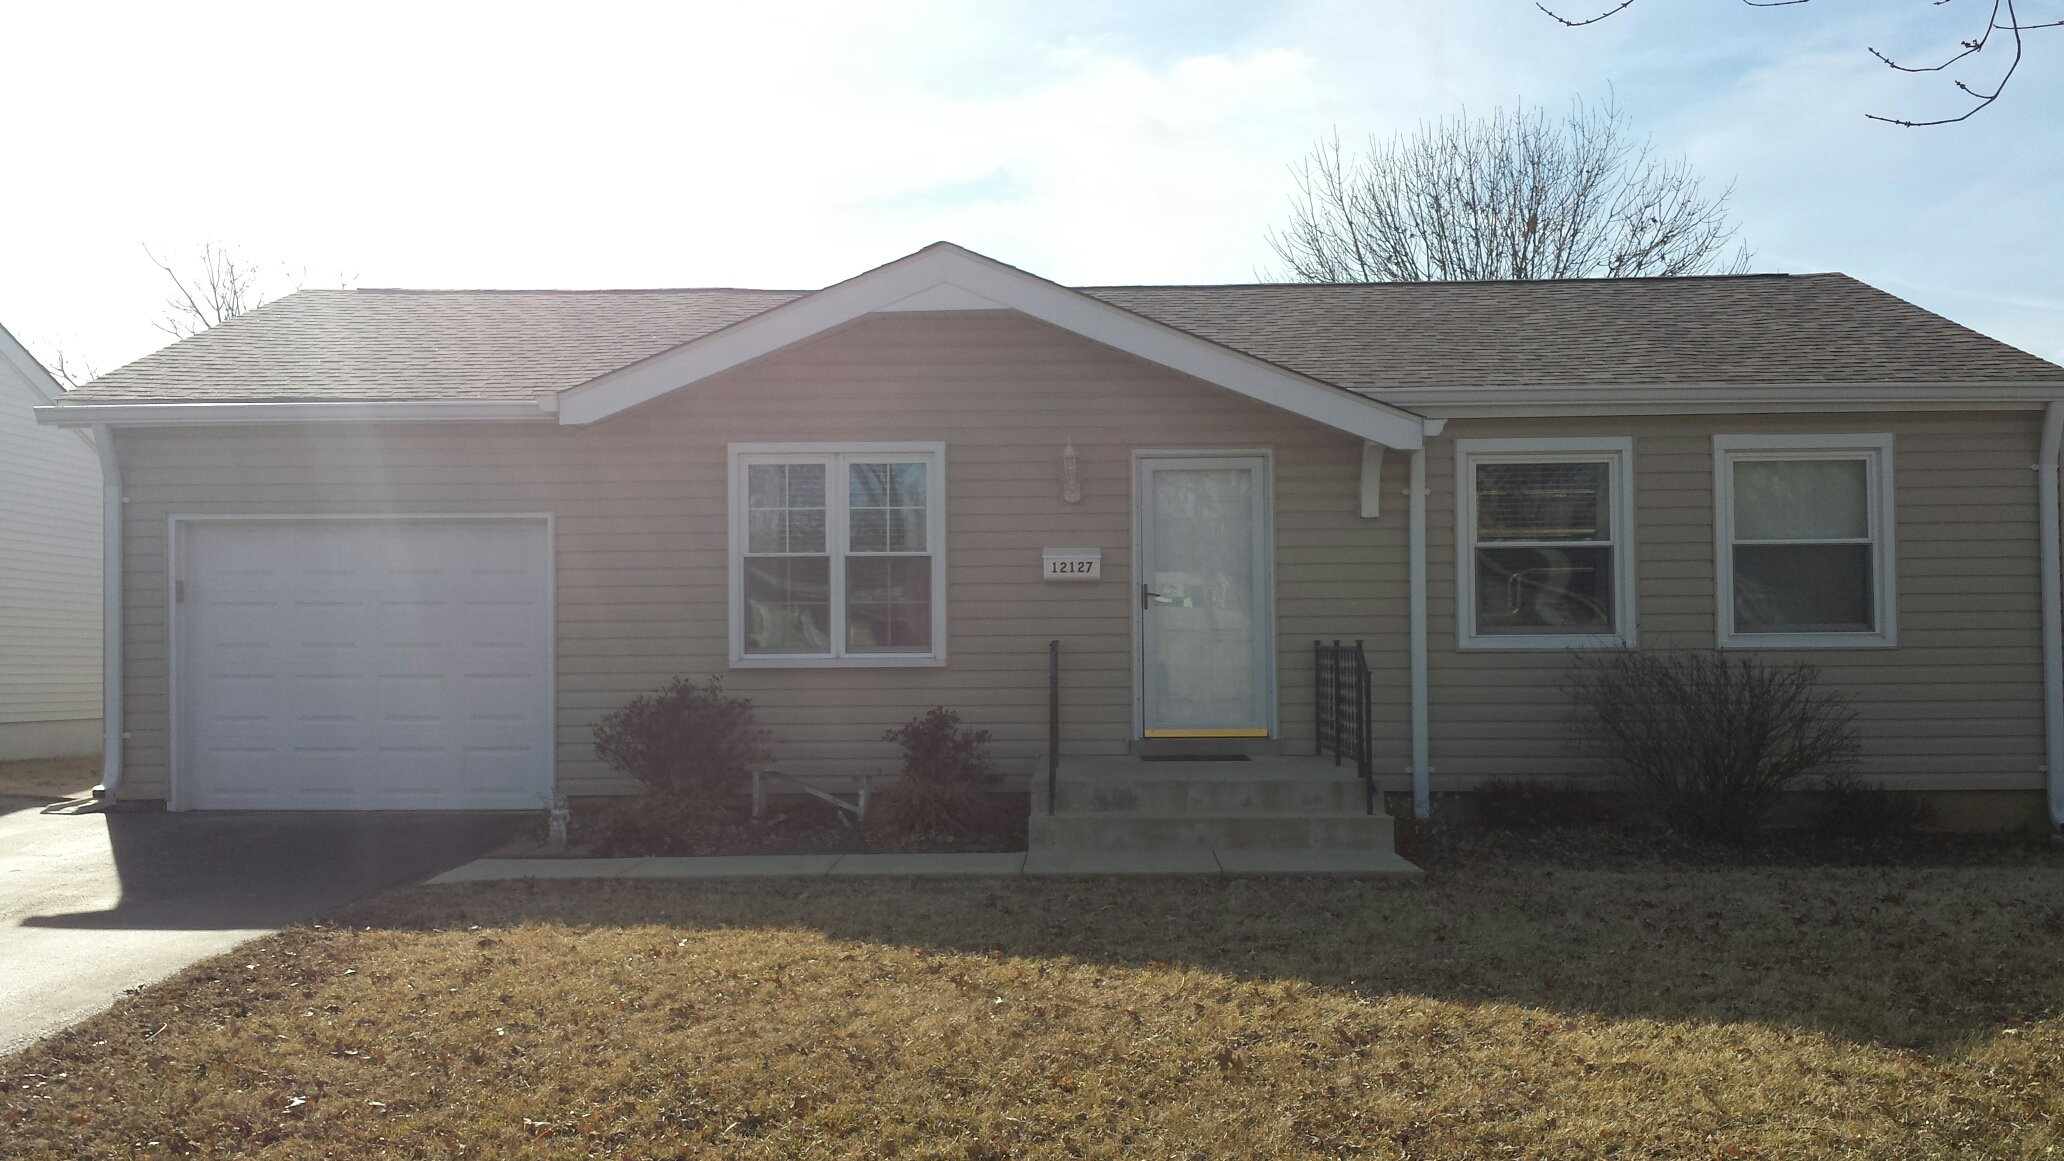 Maryland Heights, MO - New vinyl siding in Maryland Heights